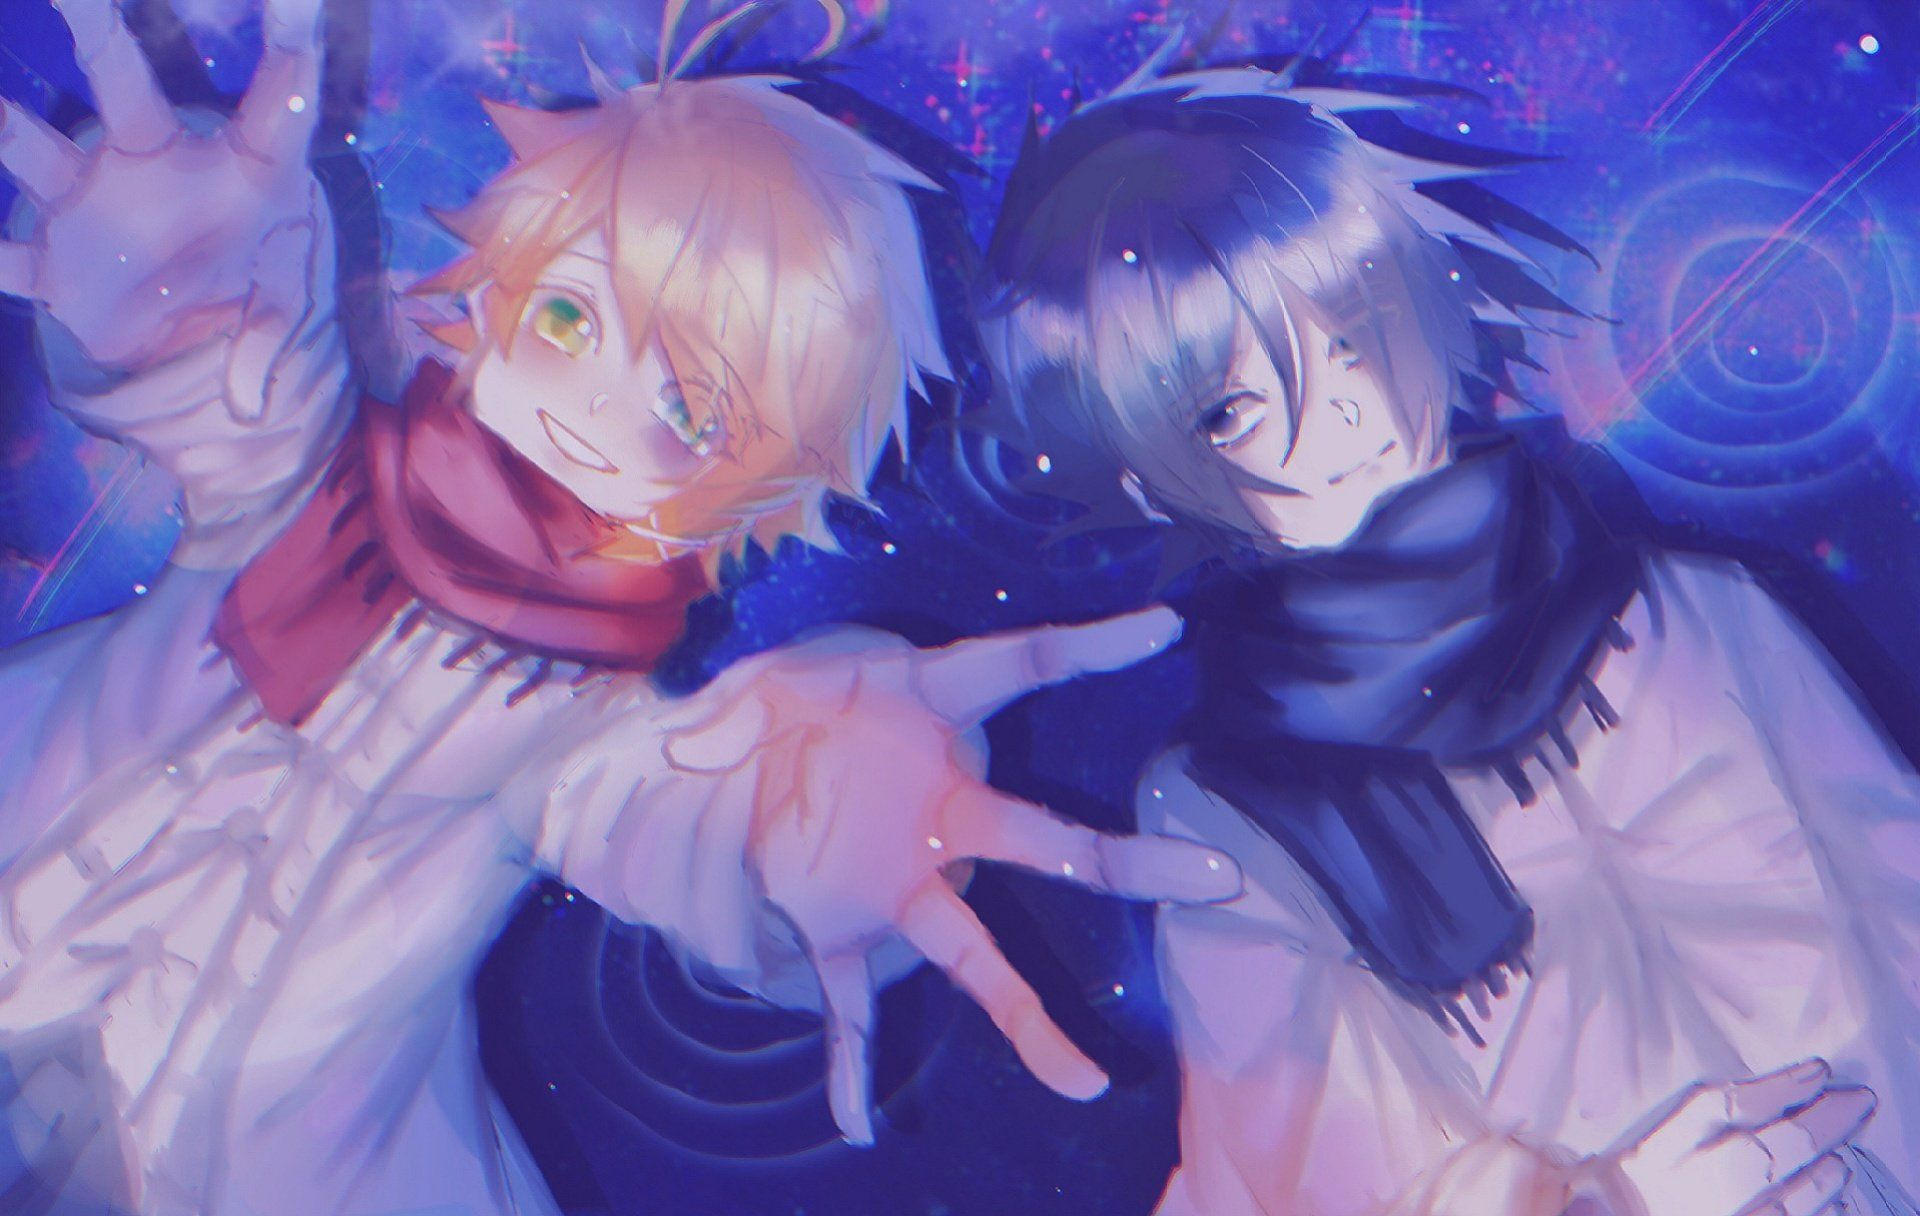 Connection Collapse On Twitter Anime Angel Anime Neverland